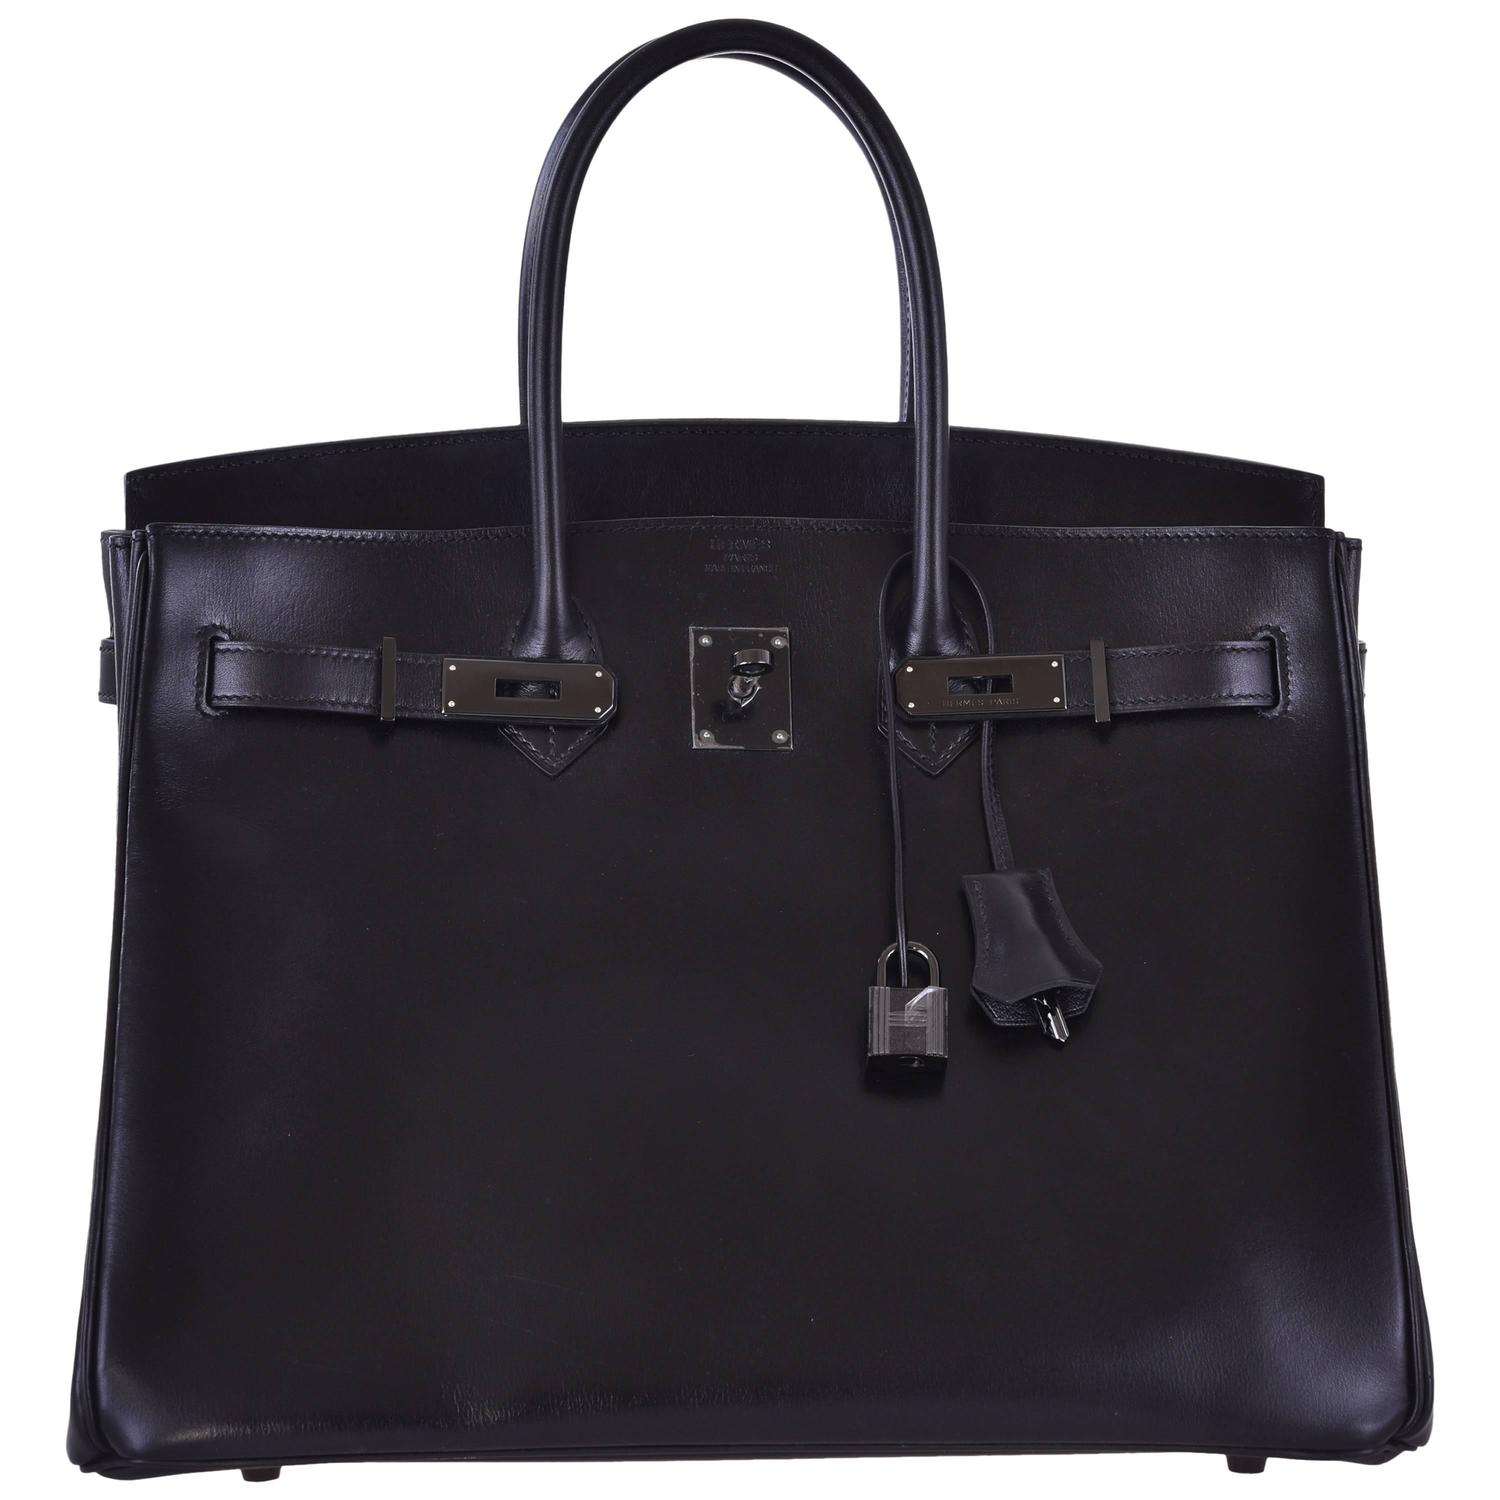 birkin bag hermes replica - Vintage Herm��s Top Handle Bags - 781 For Sale at 1stdibs - Page 7